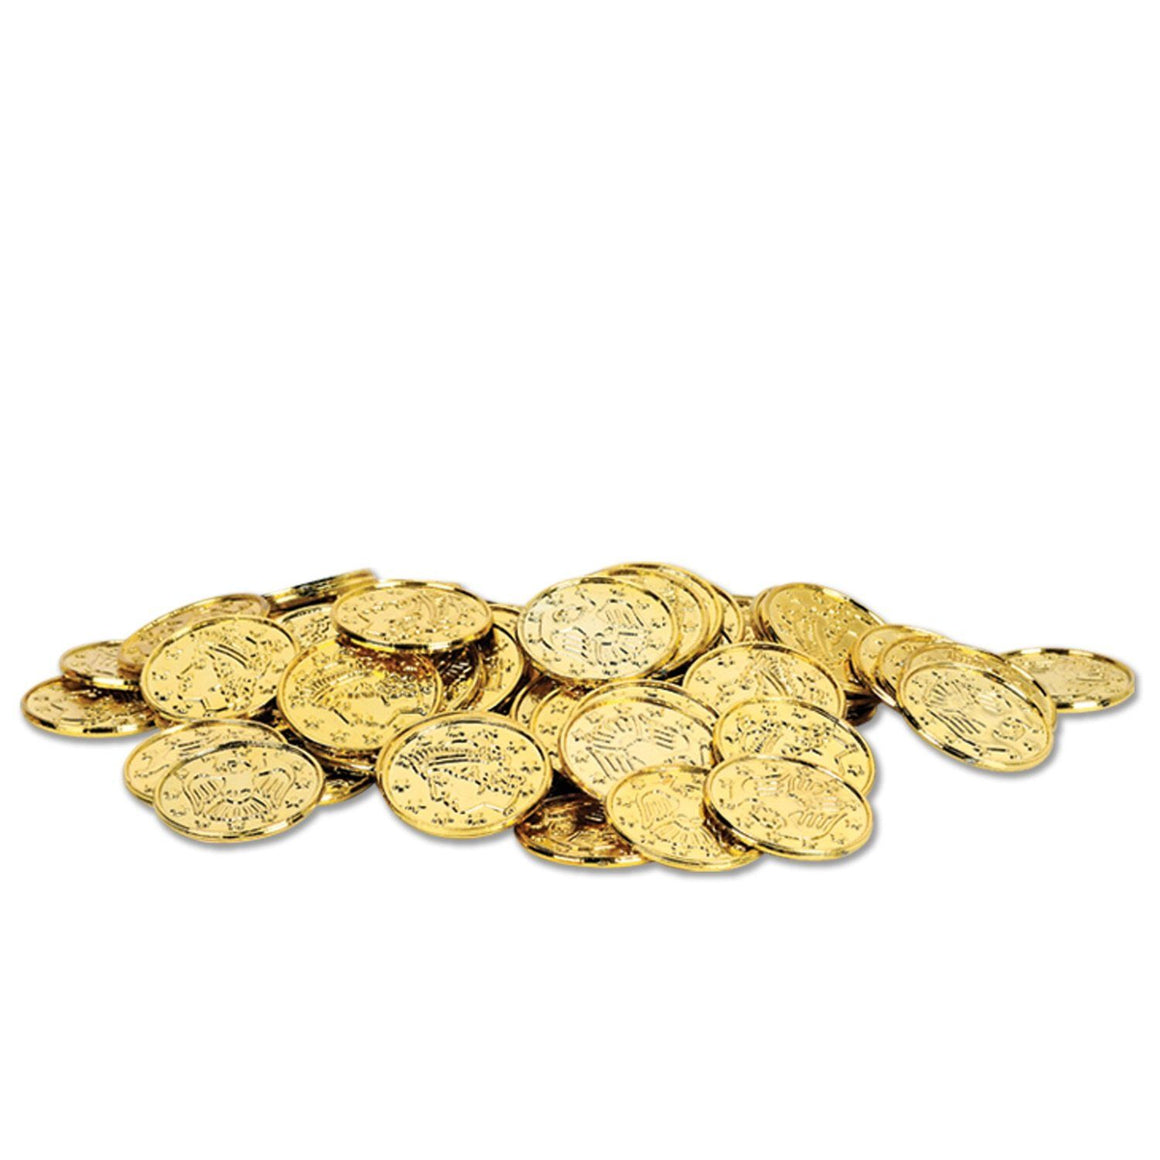 EXTRAS - GOLD COINS, PARTY DECOR, SKS - Beistle Co - Bon + Co. Party Studio